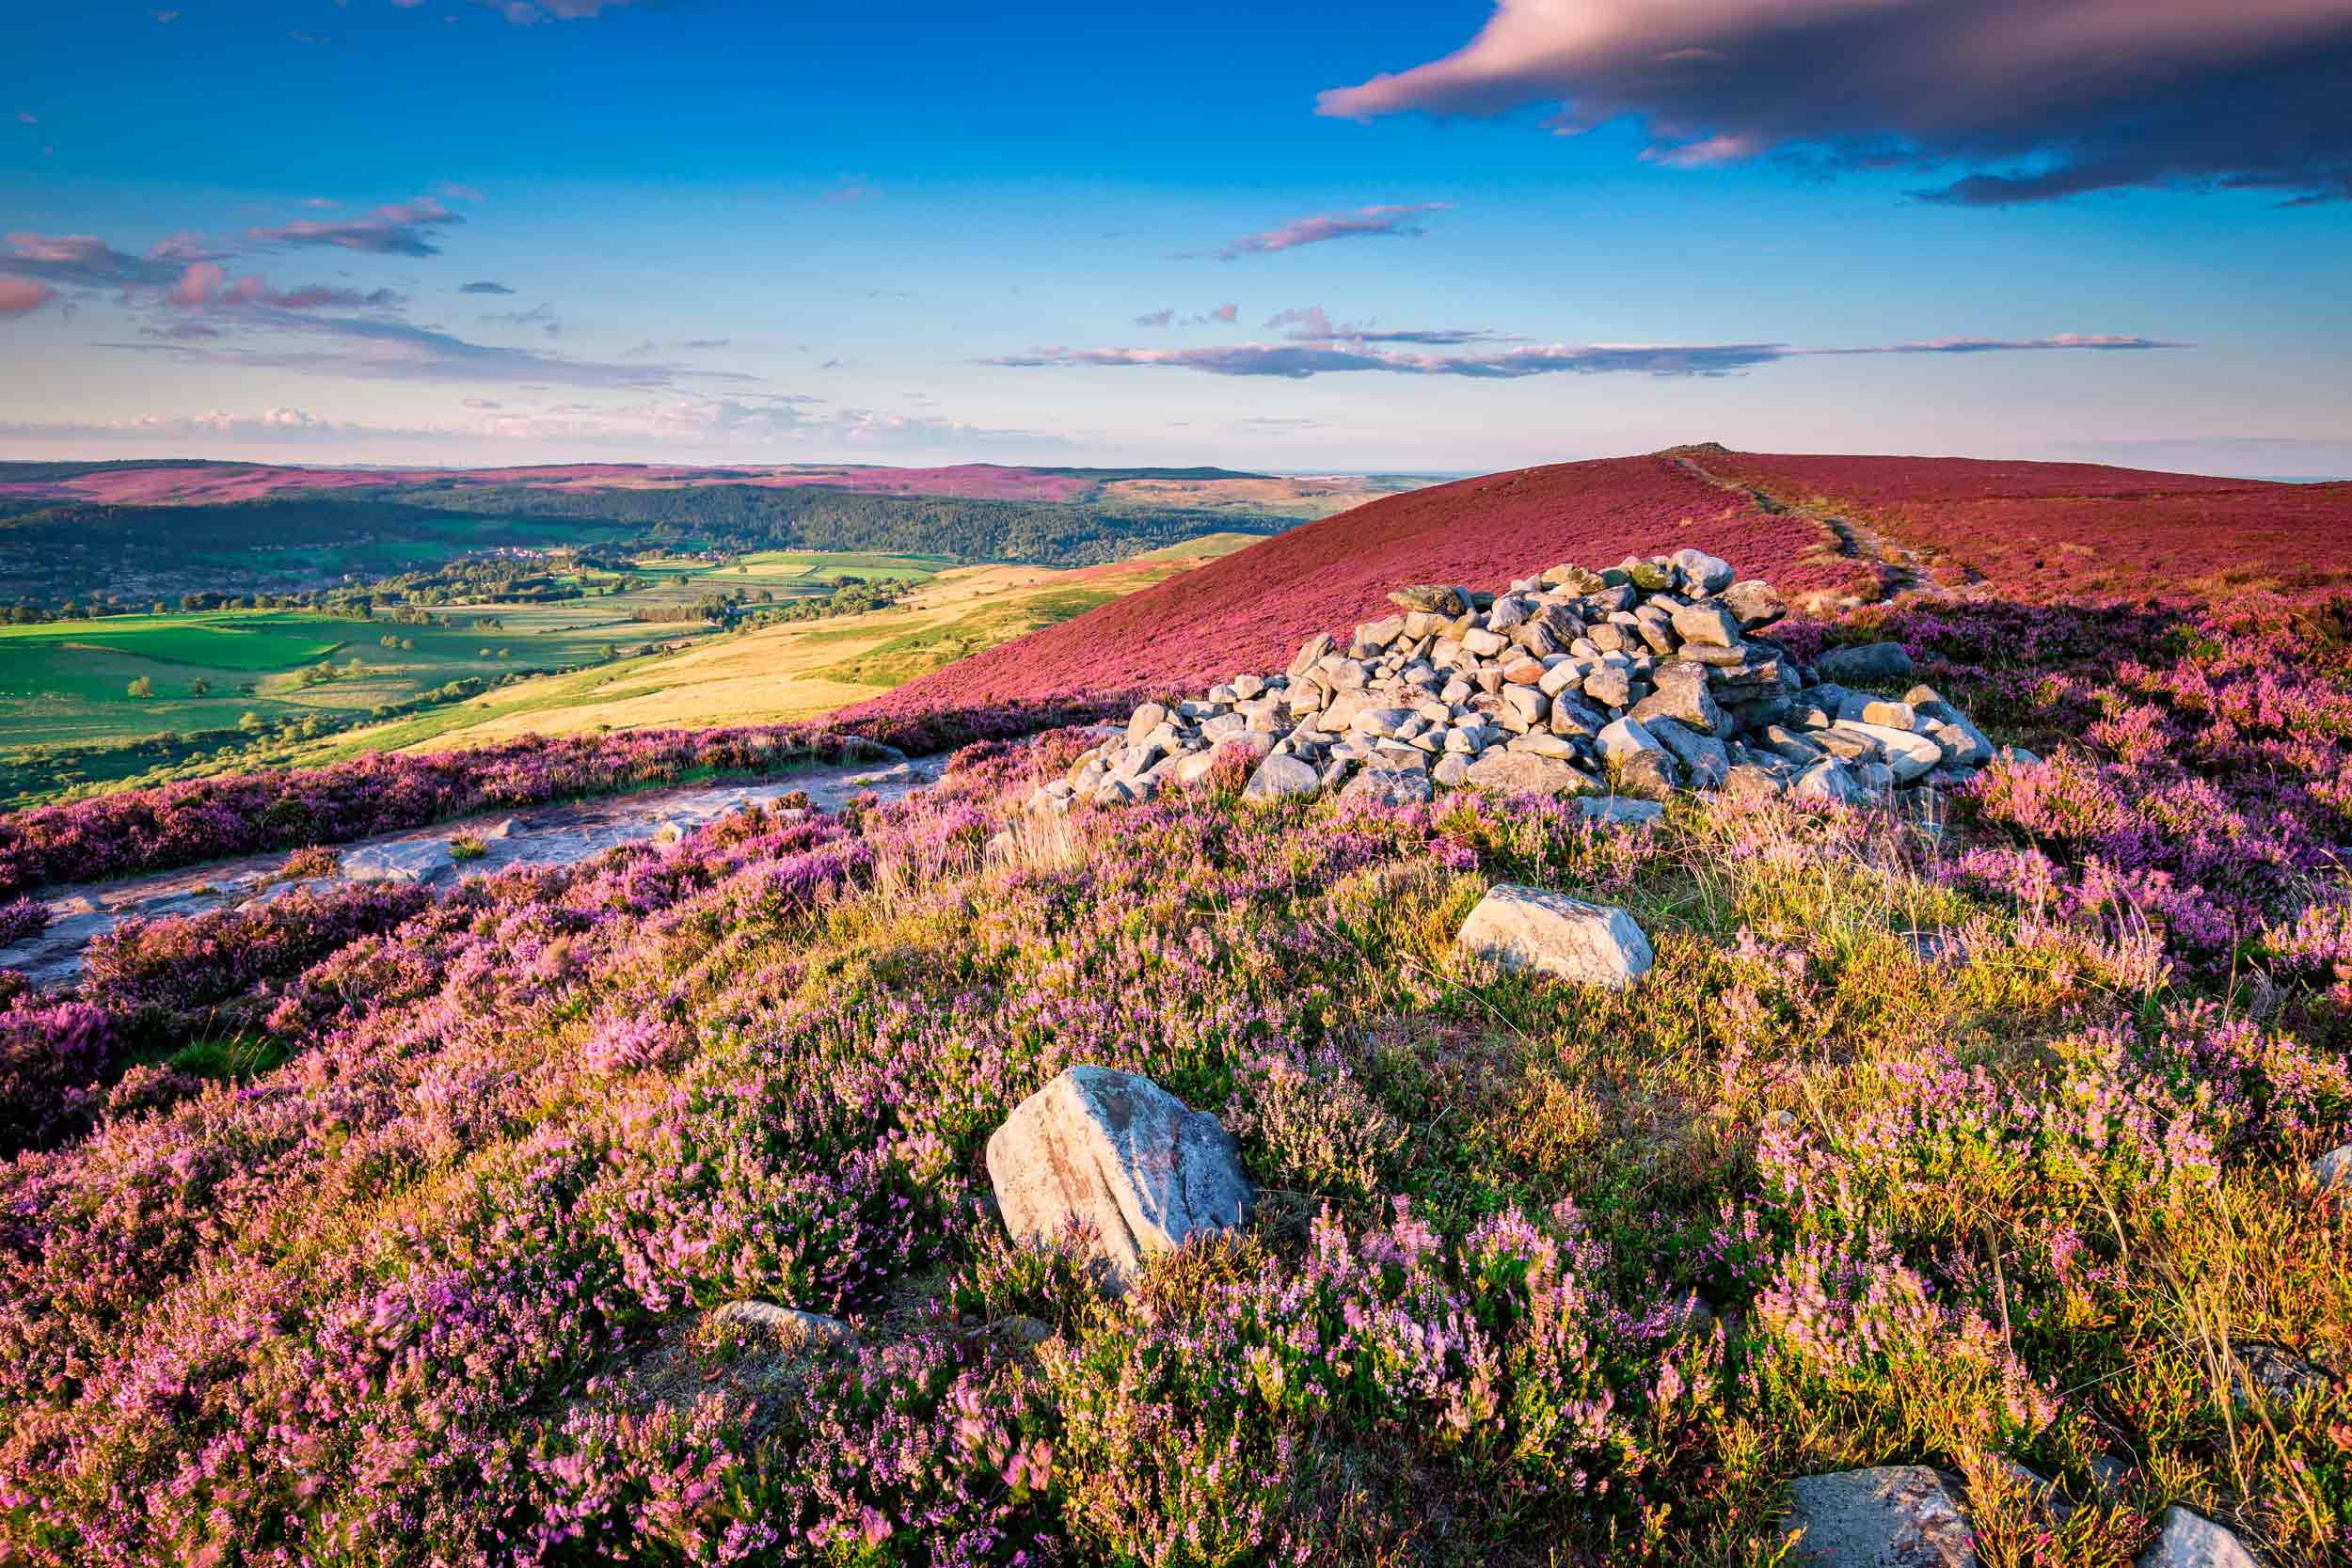 Simonside Hills overlooking Coquetdale, Northumberland  (Dave Head/Shutterstock)